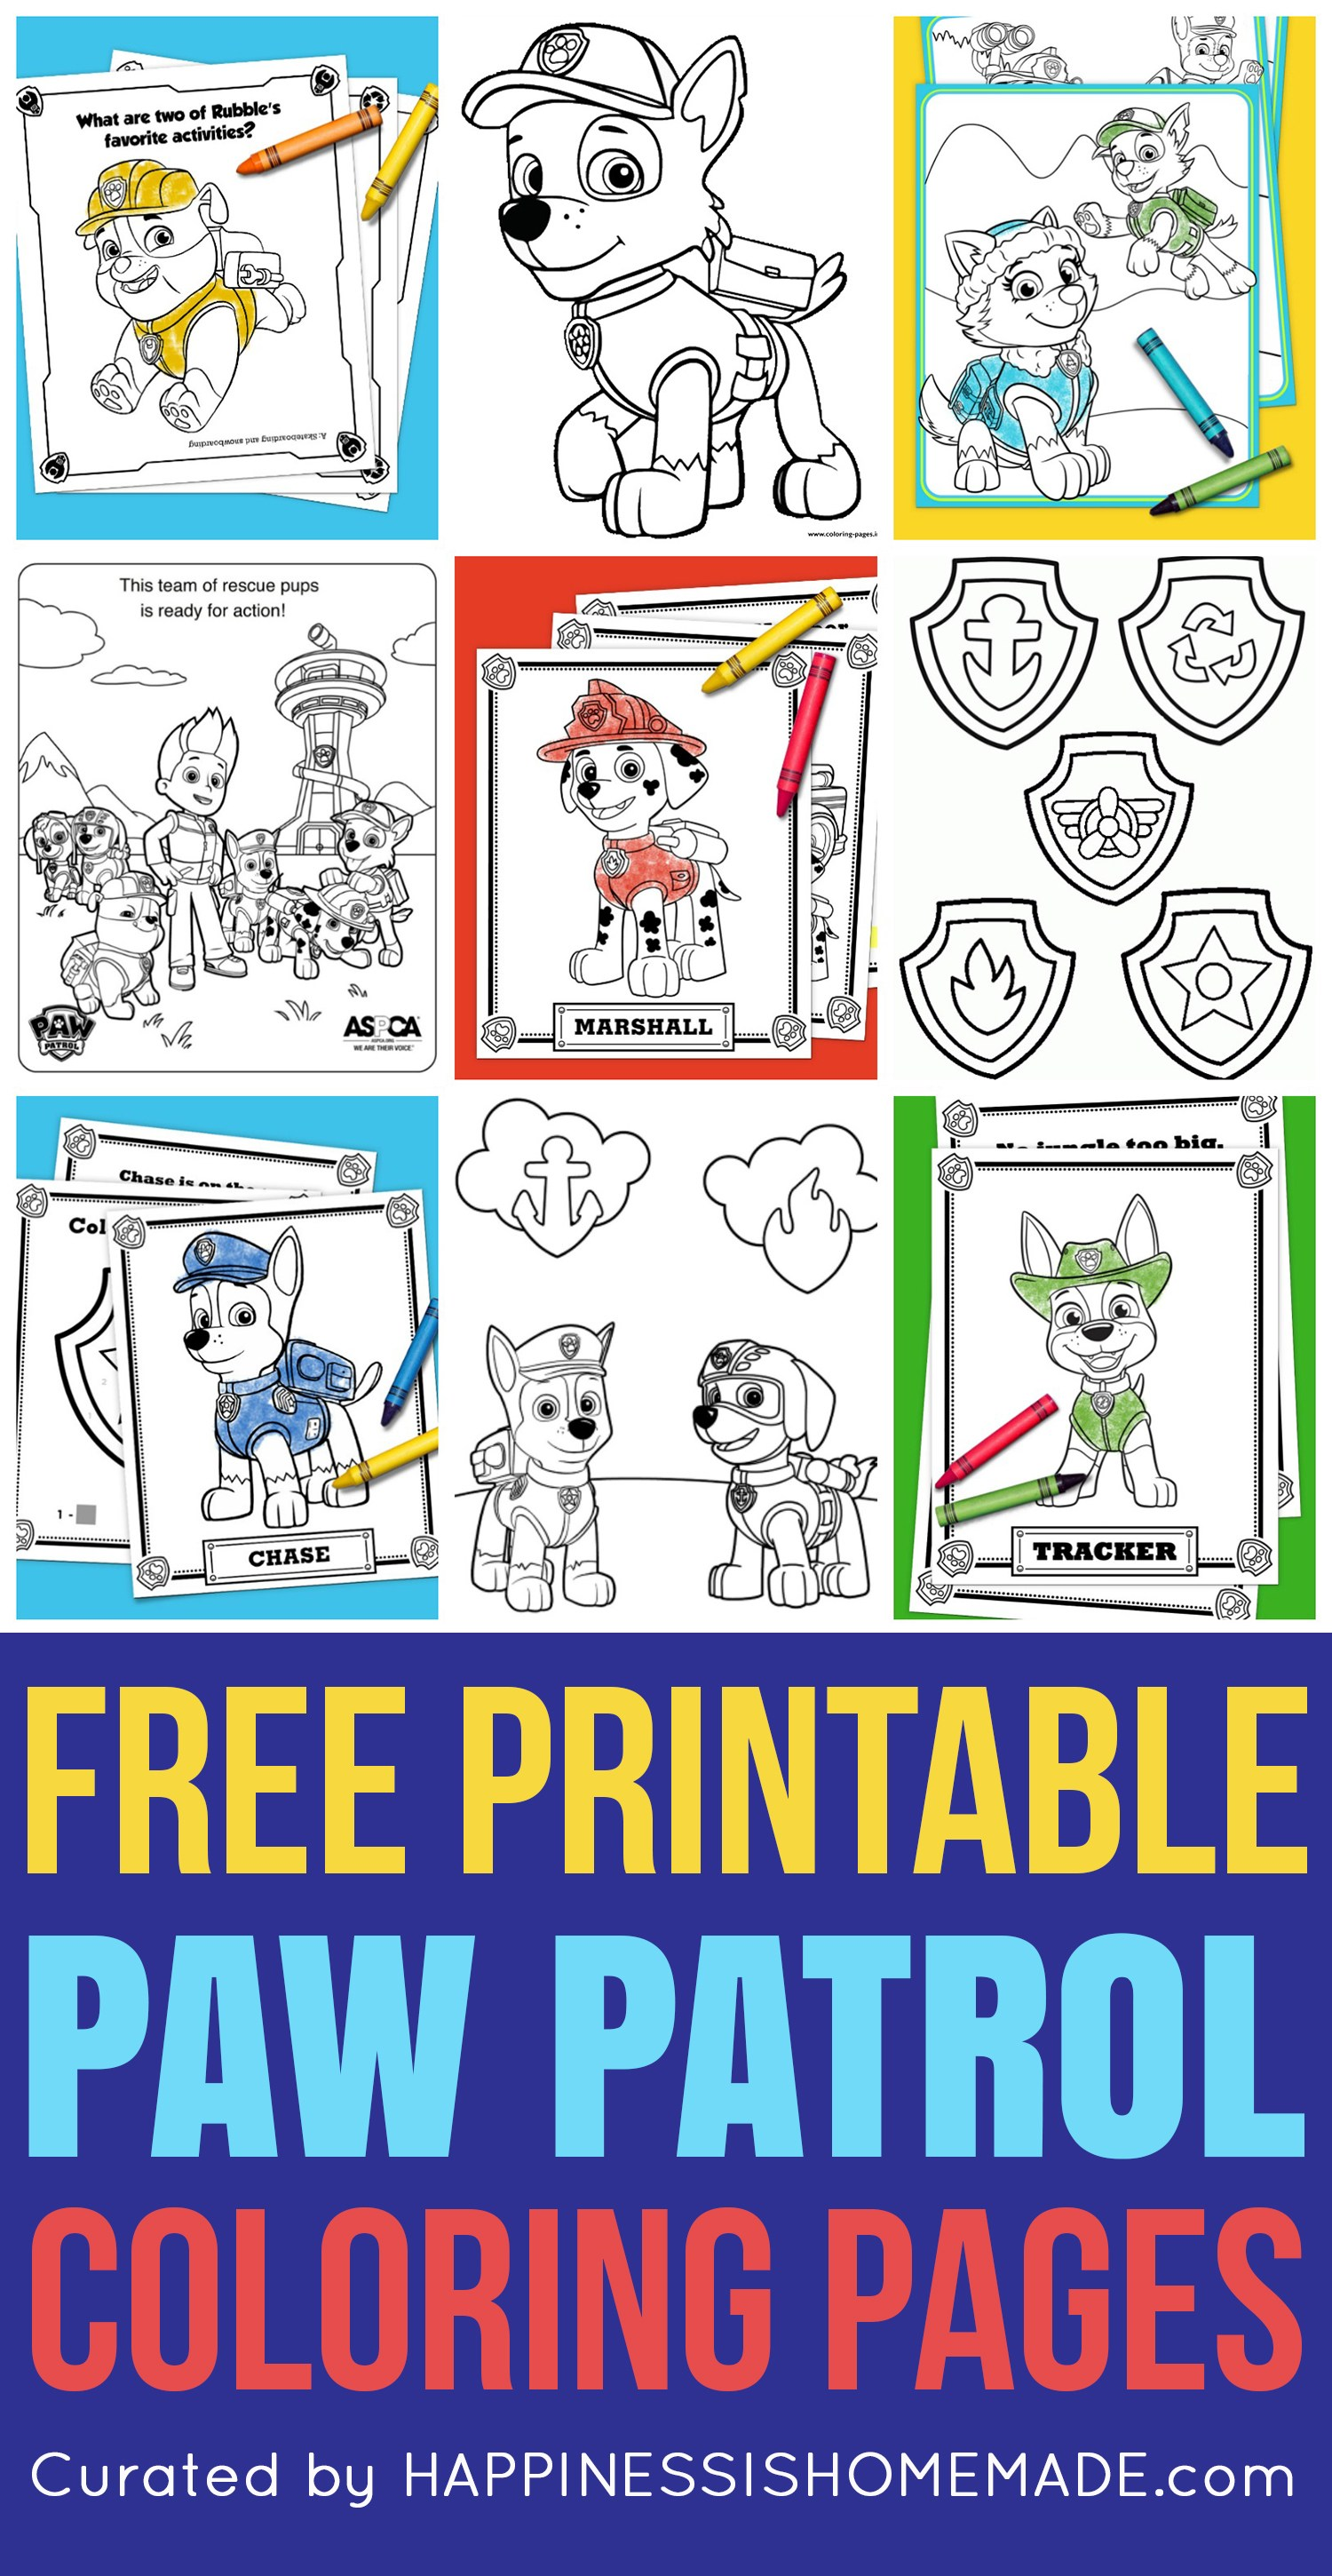 Free Paw Patrol Coloring Pages Happiness Is Homemade